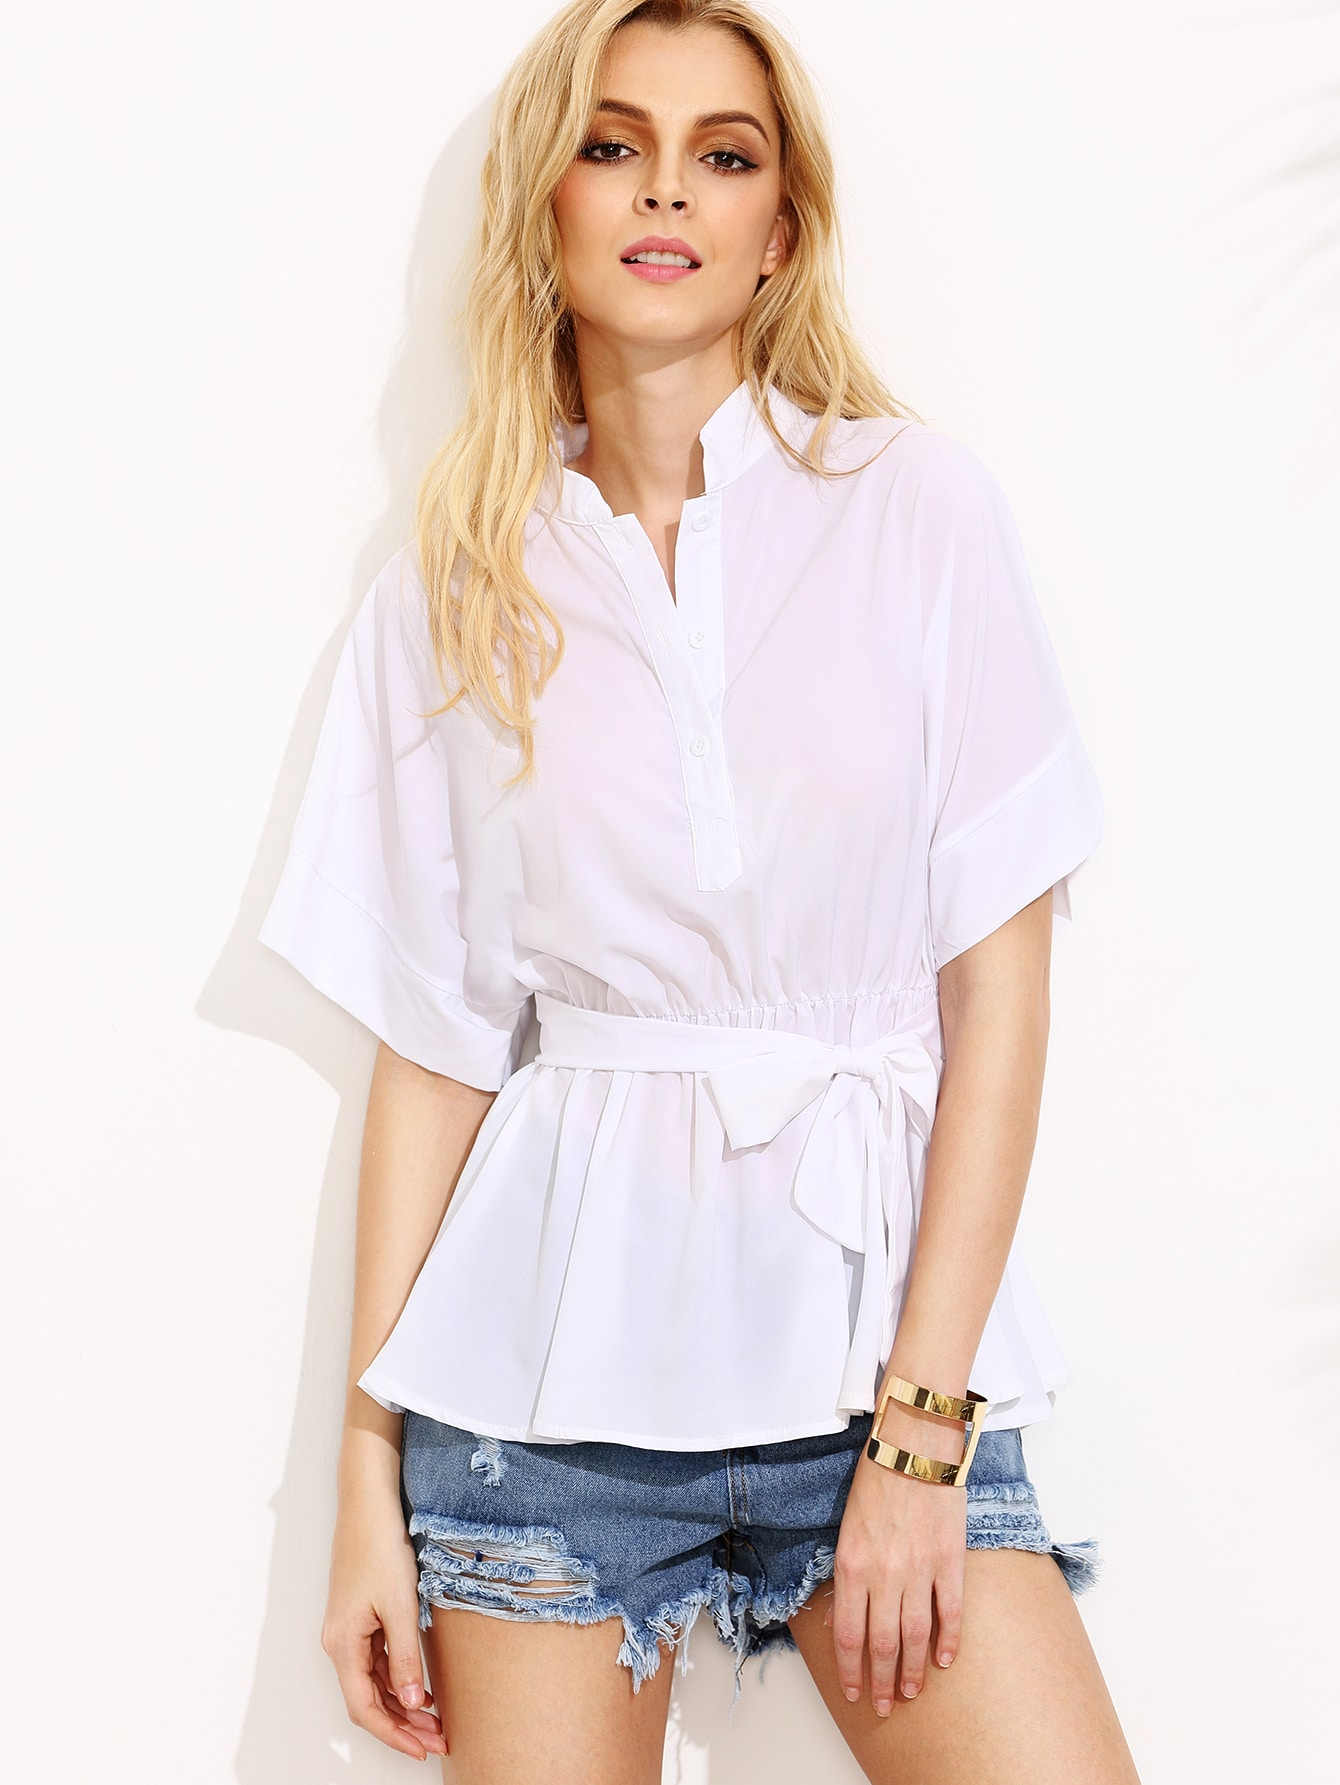 Stand Collar Blouse Designs Images : Stand collar blouse styles